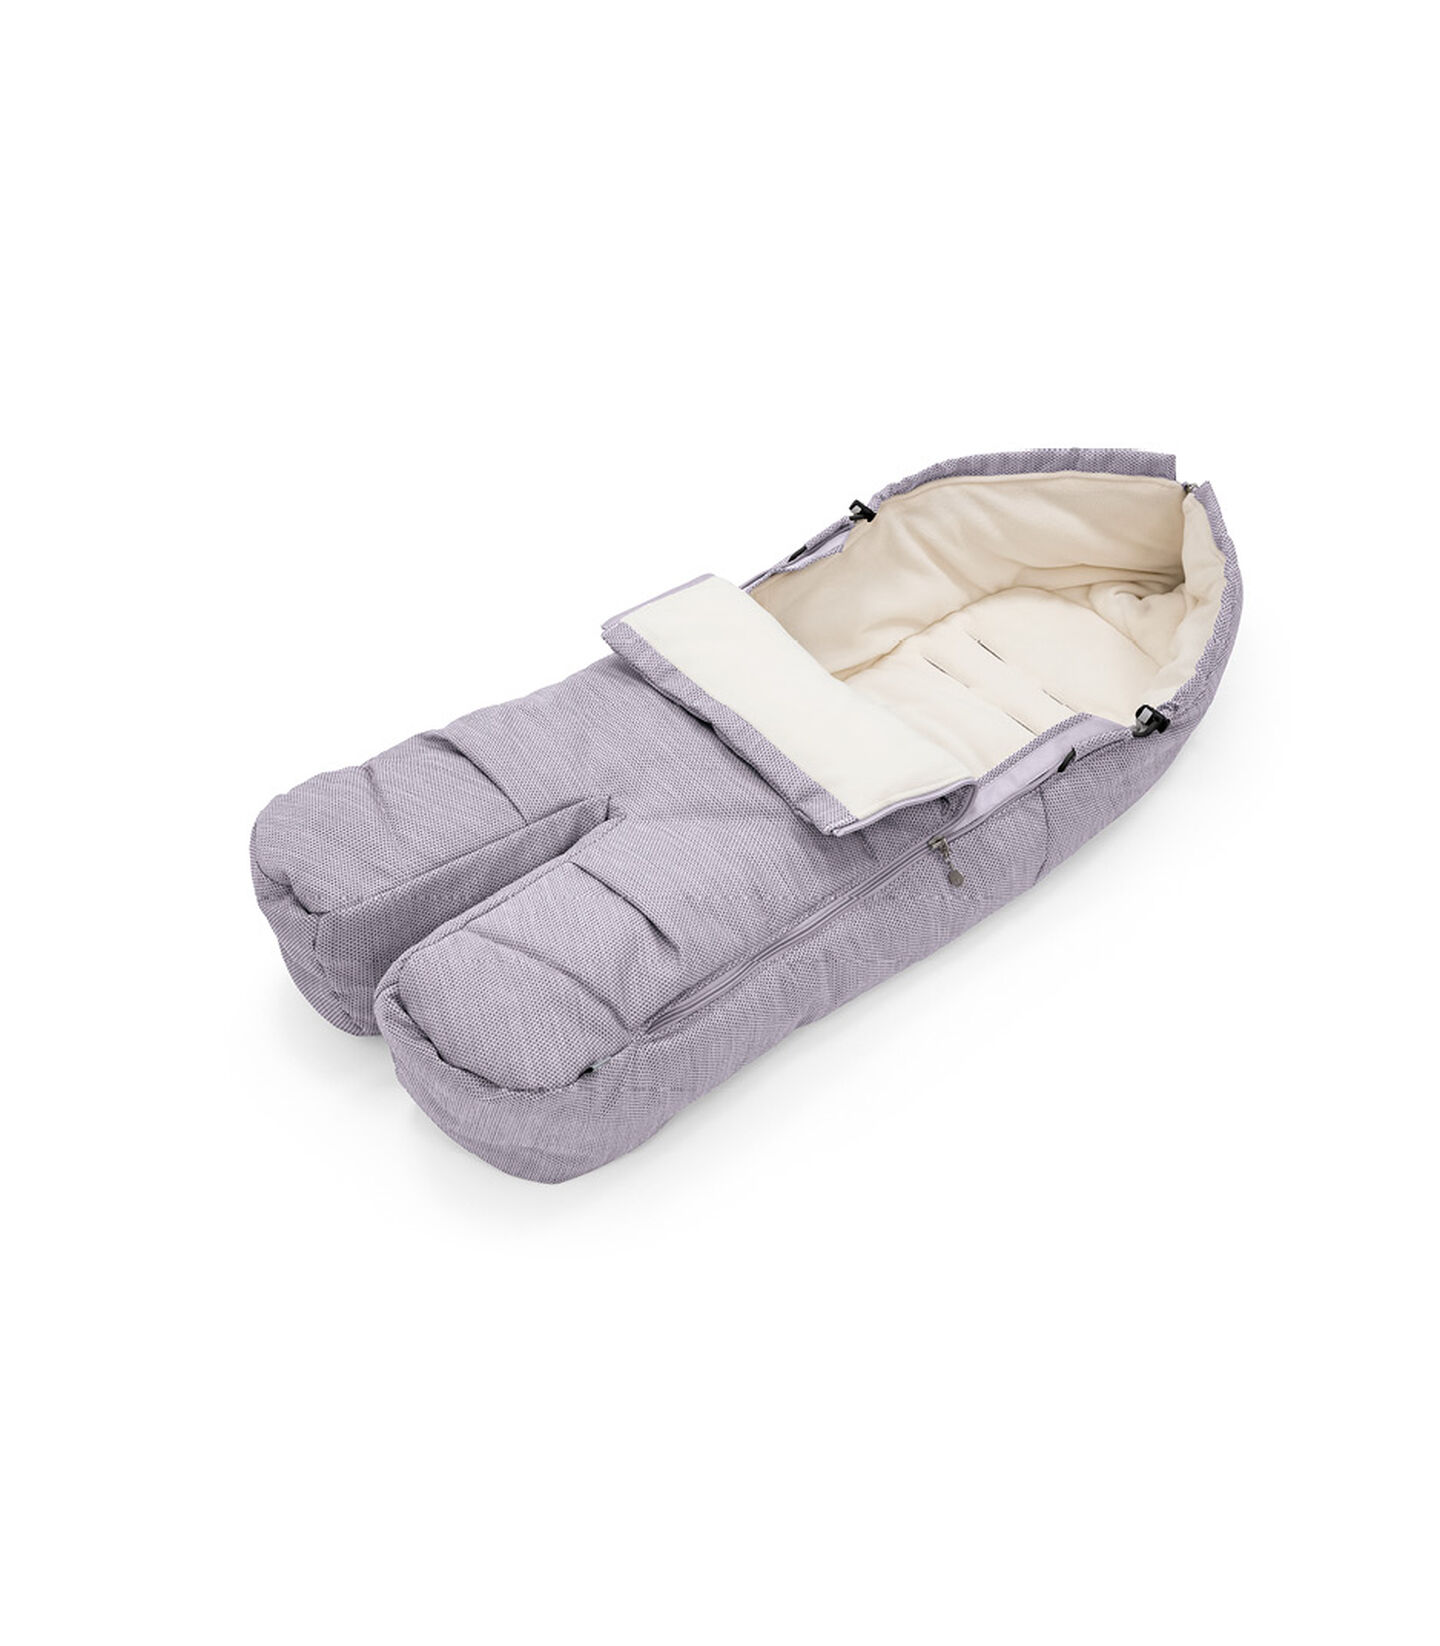 Stokke® Foot Muff Brushed Lilac, Brushed Lilac, mainview